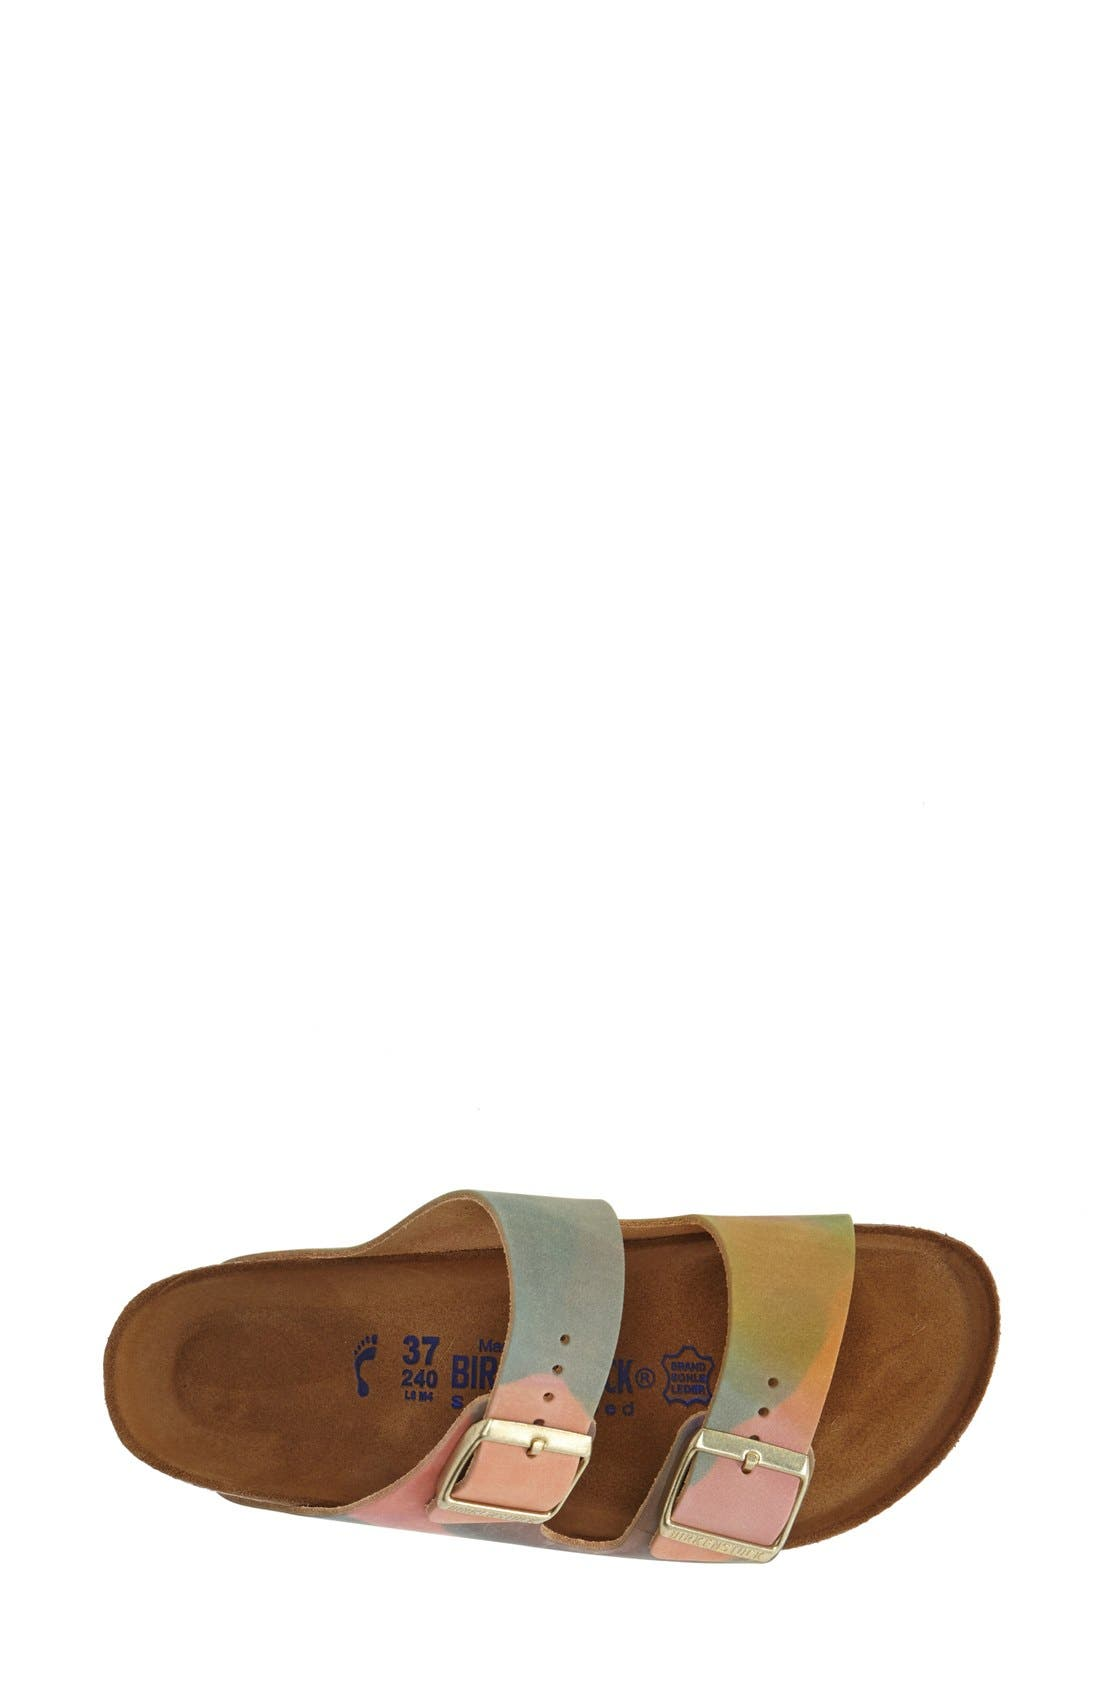 Alternate Image 3  - Birkenstock 'Arizona' Nubuck Leather Sandal (Women)